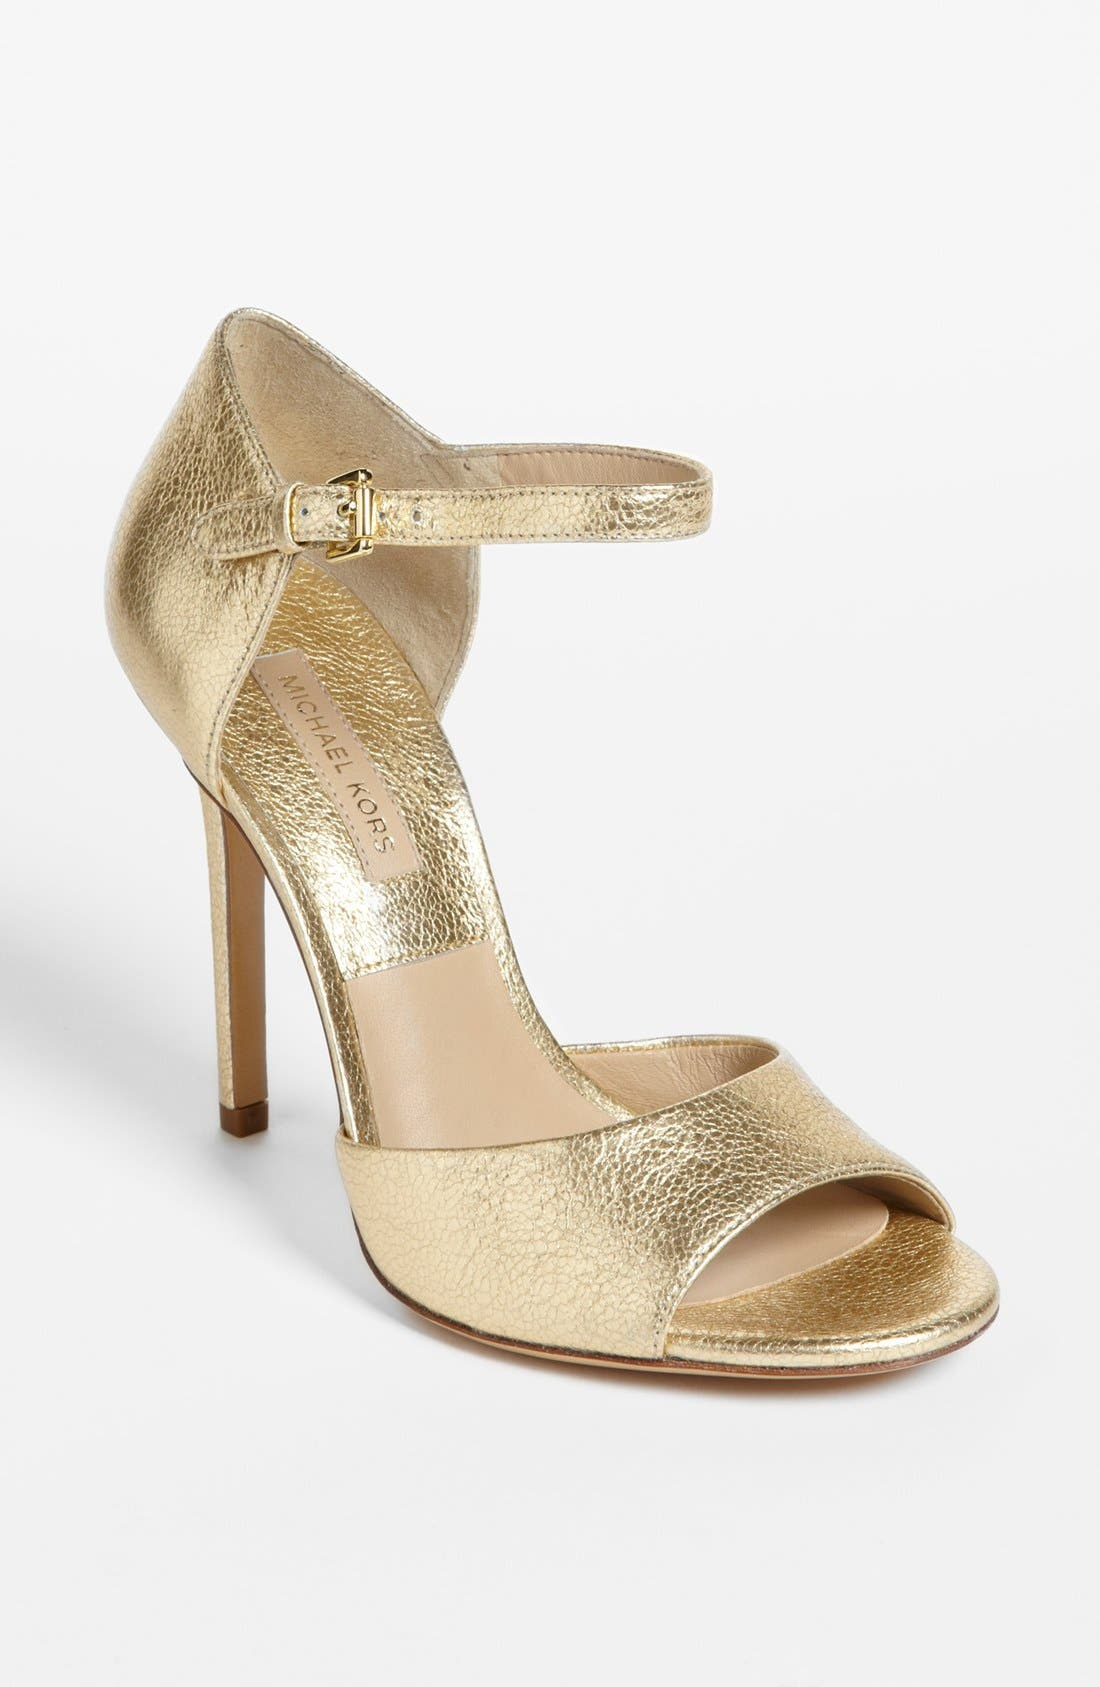 Alternate Image 1 Selected - Michael Kors 'Malia' Sandal